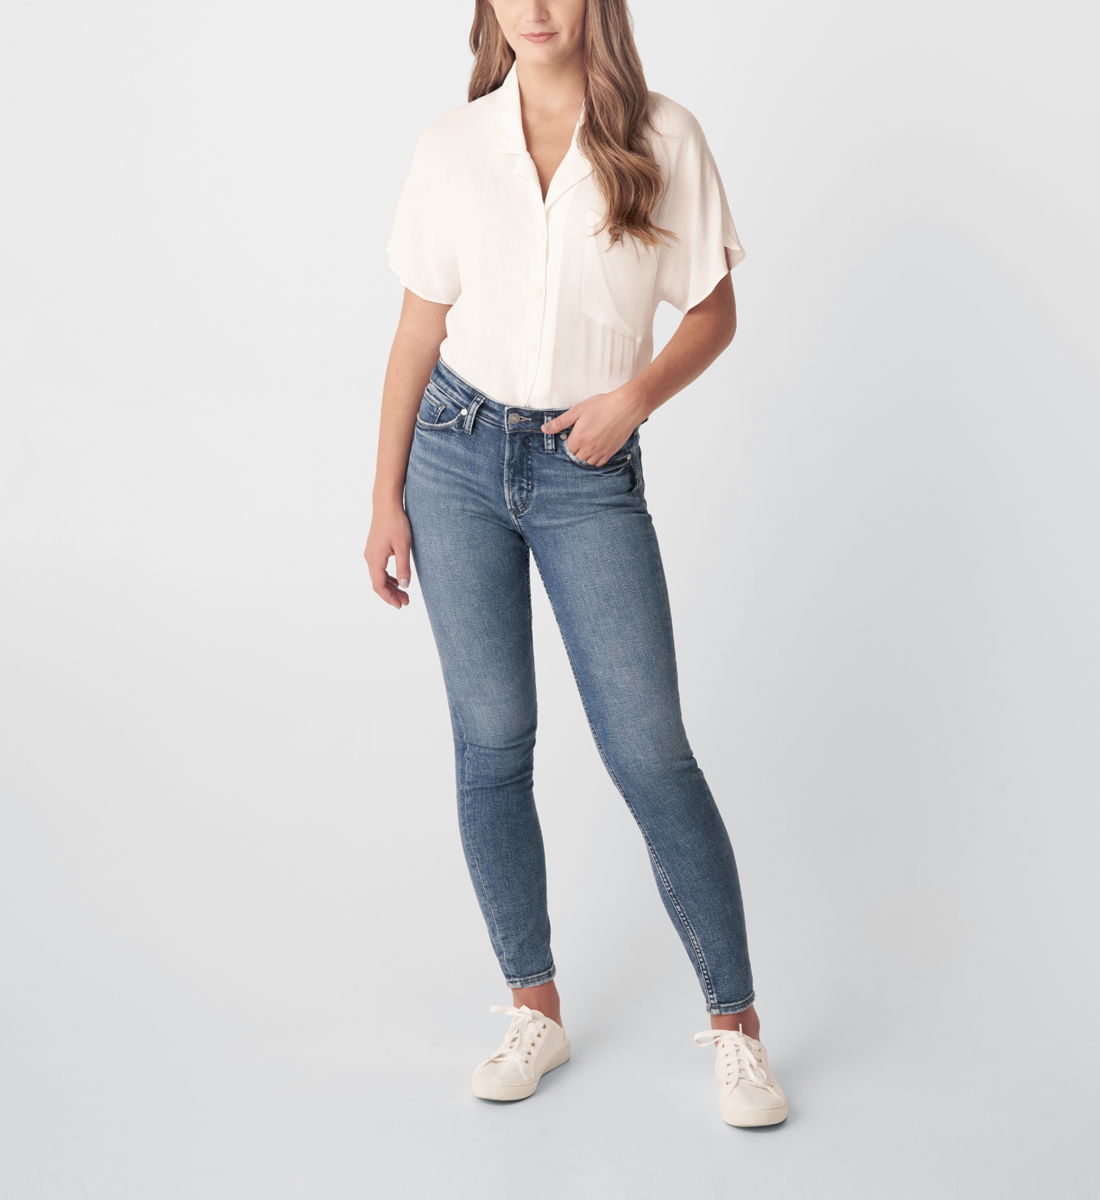 Silver Jeans Most Wanted Mid Rise Skinny Jeans